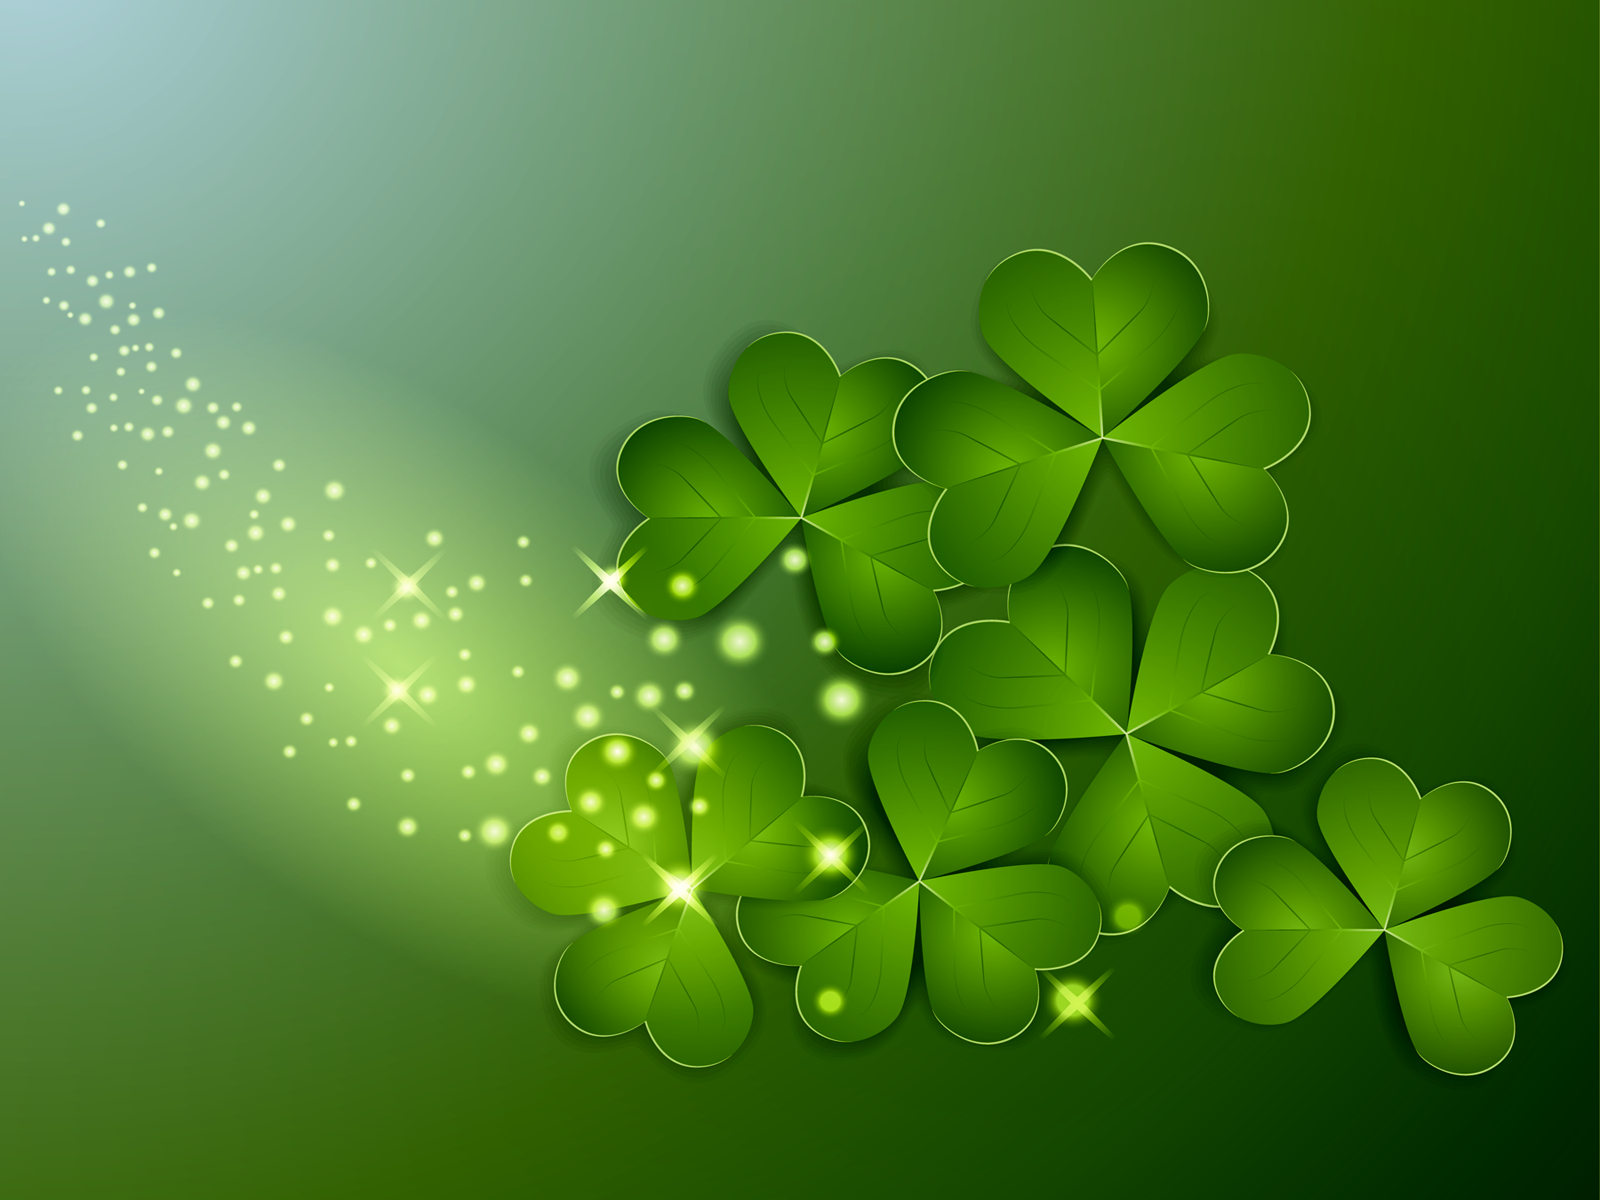 Wallpaper St Patrick'S Day